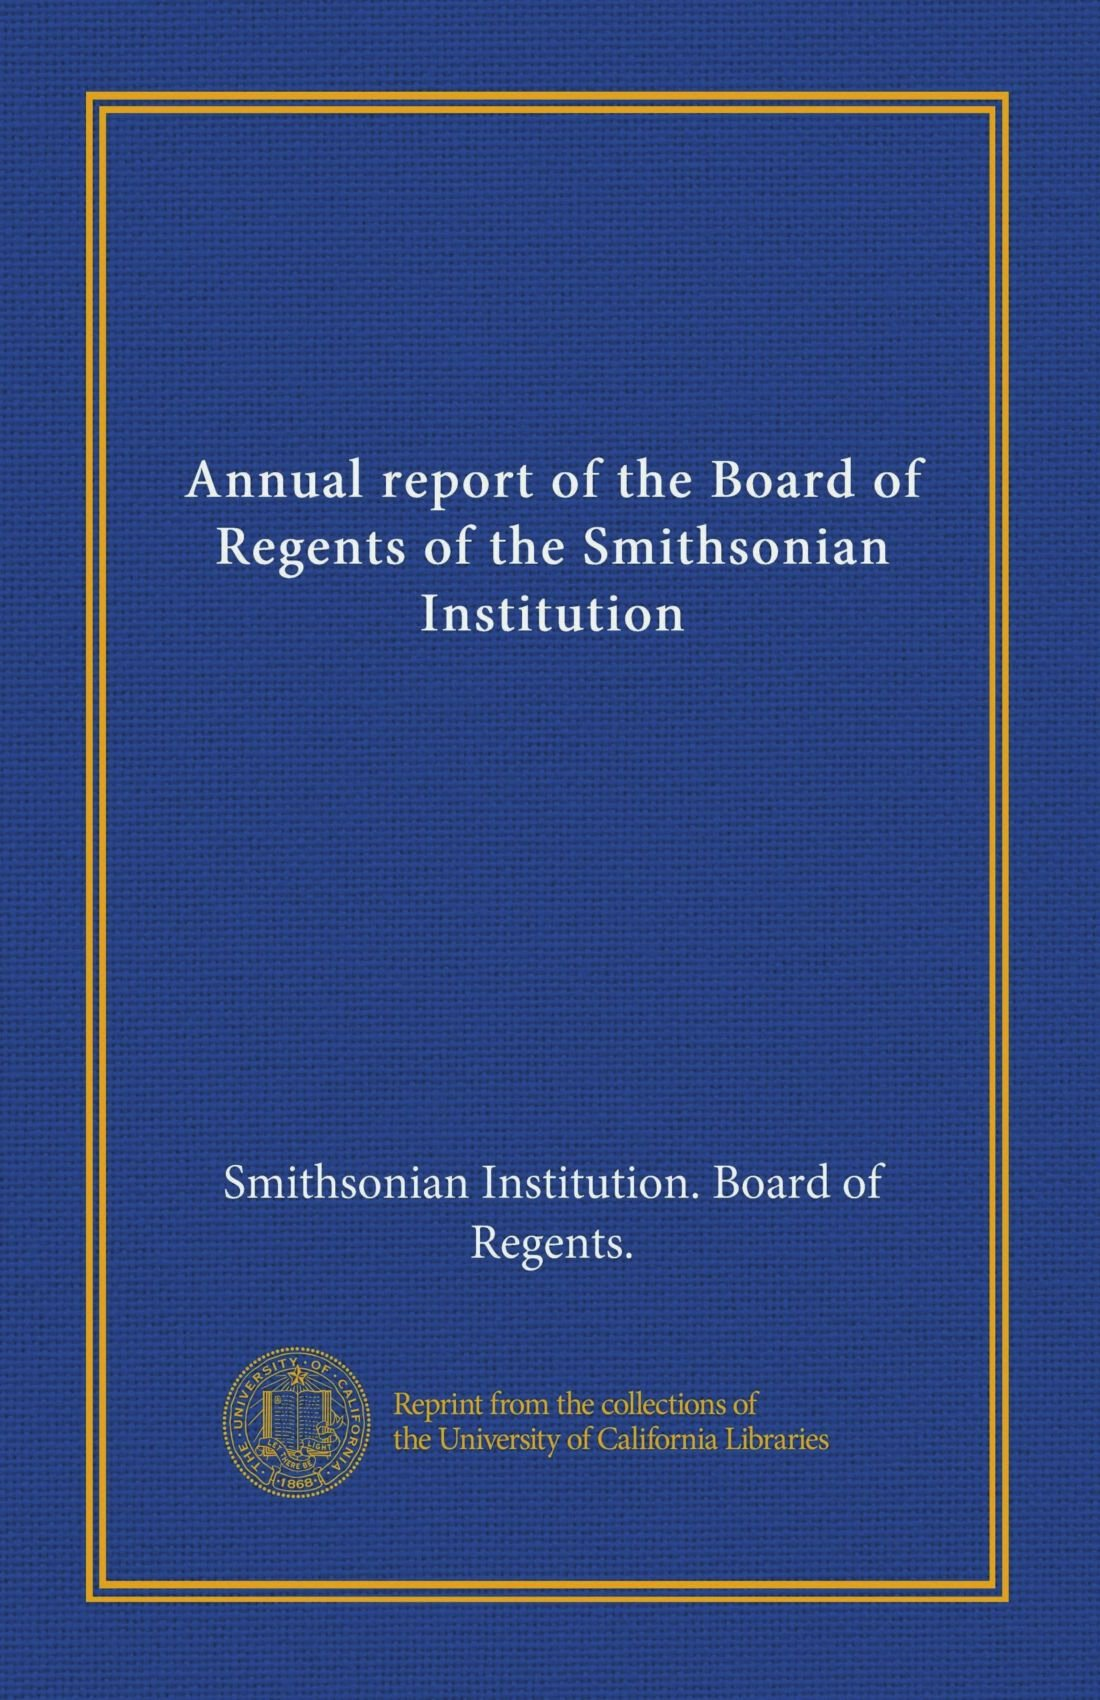 Annual report of the Board of Regents of the Smithsonian Institution ebook